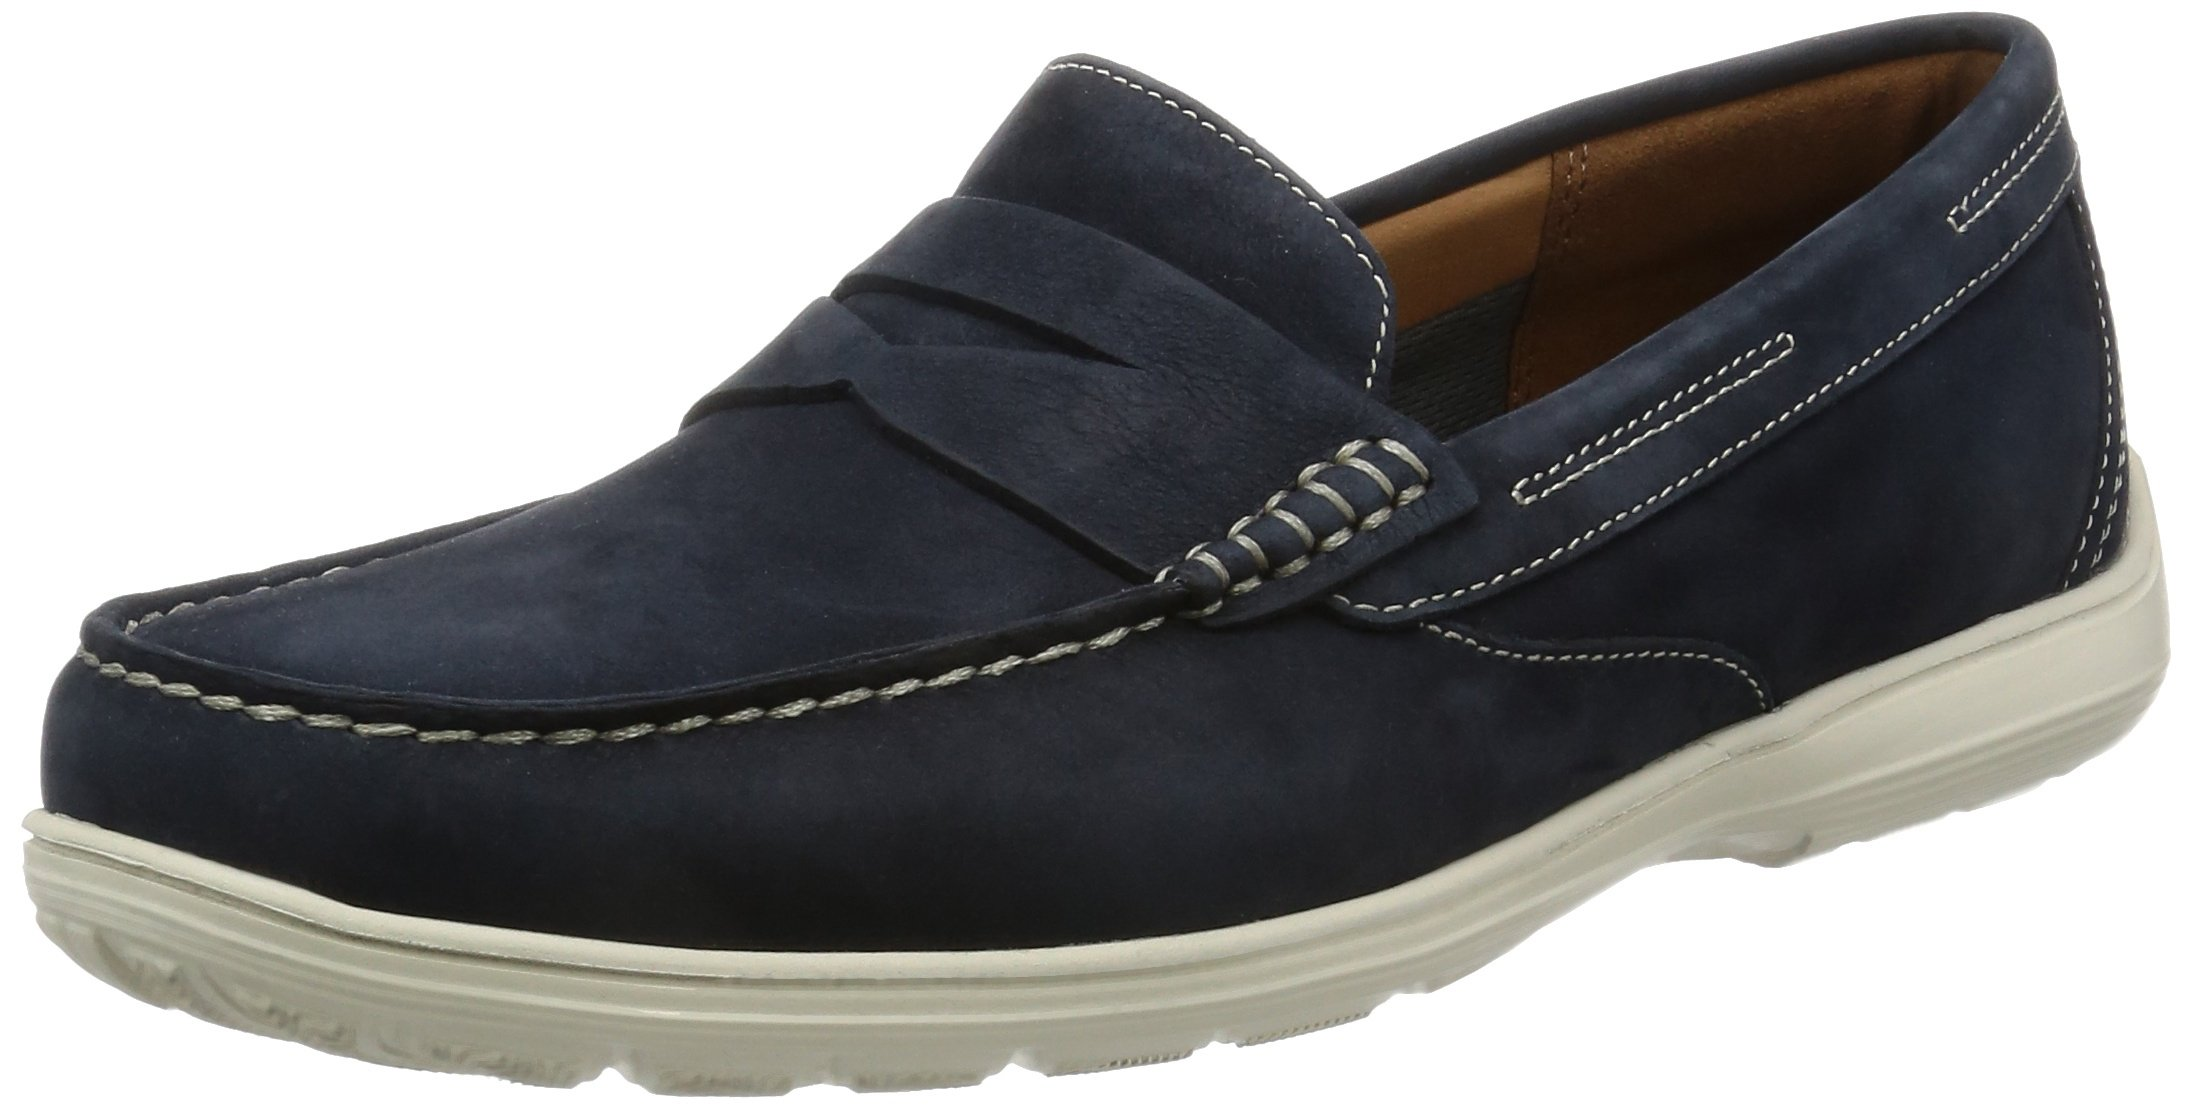 Total Dress Blue42 Motion PennyMocassins 5 Loafer Rockport Eu HommeBluenew A5LRj34